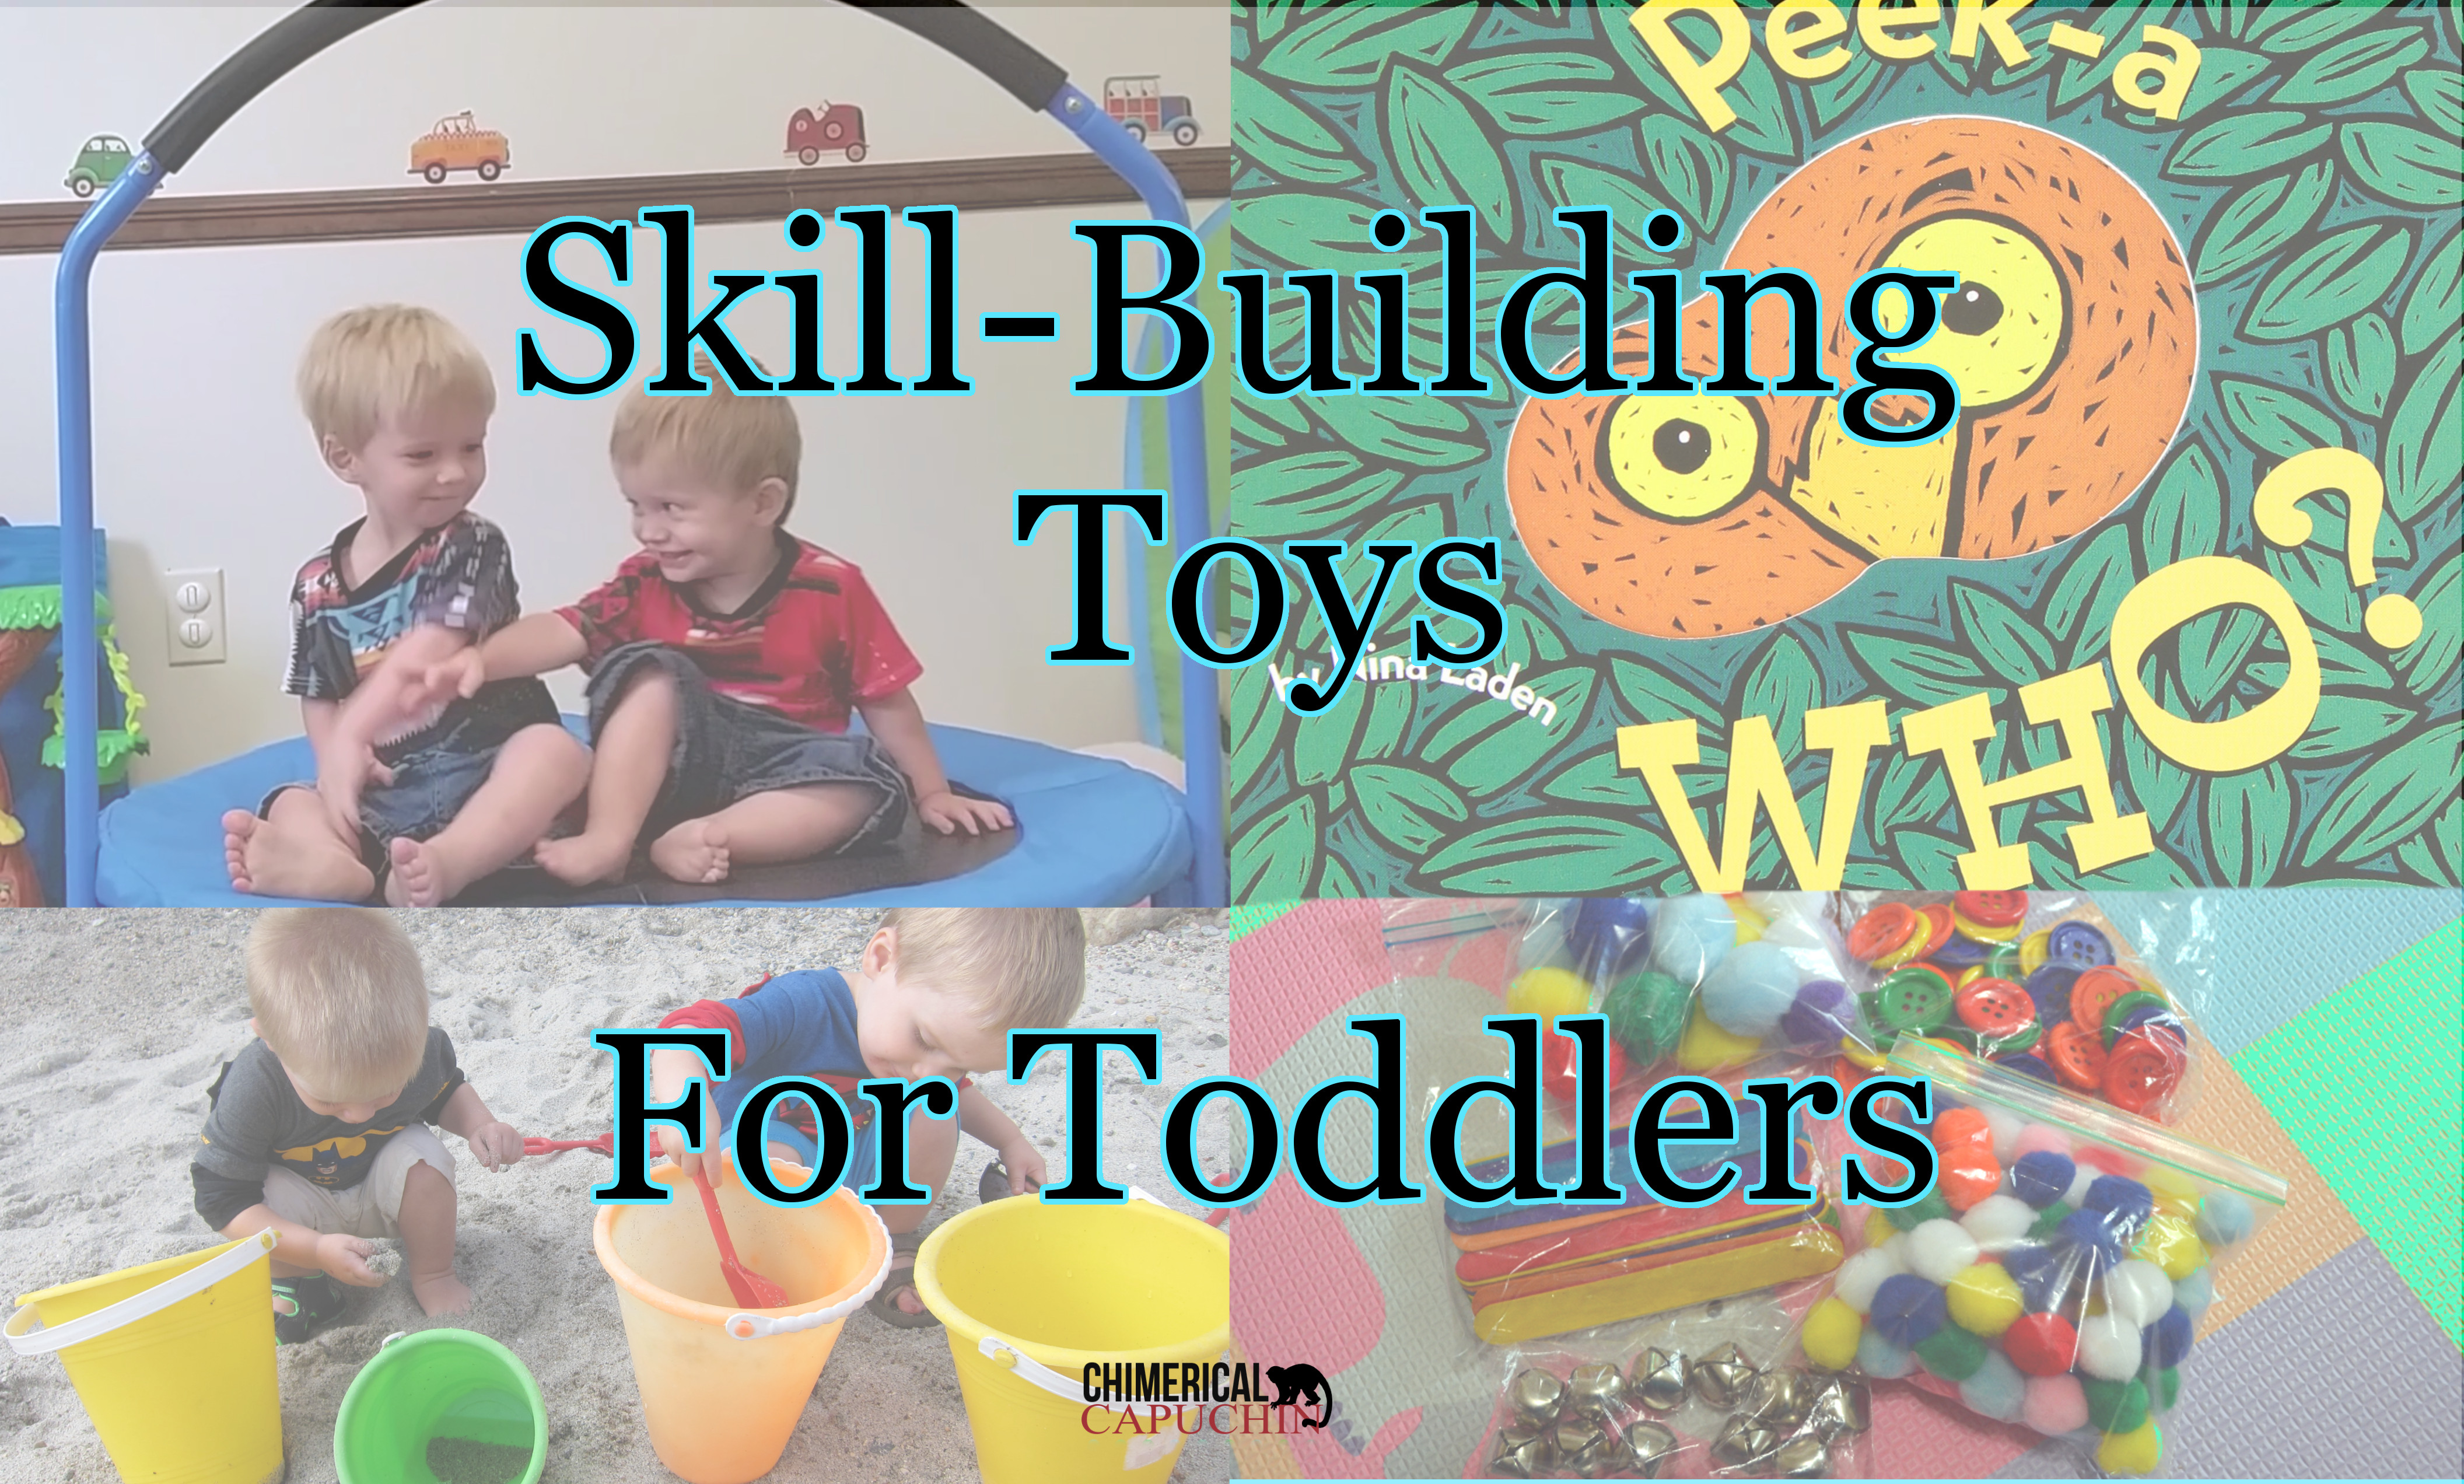 Skill Building Toys For Toddlers